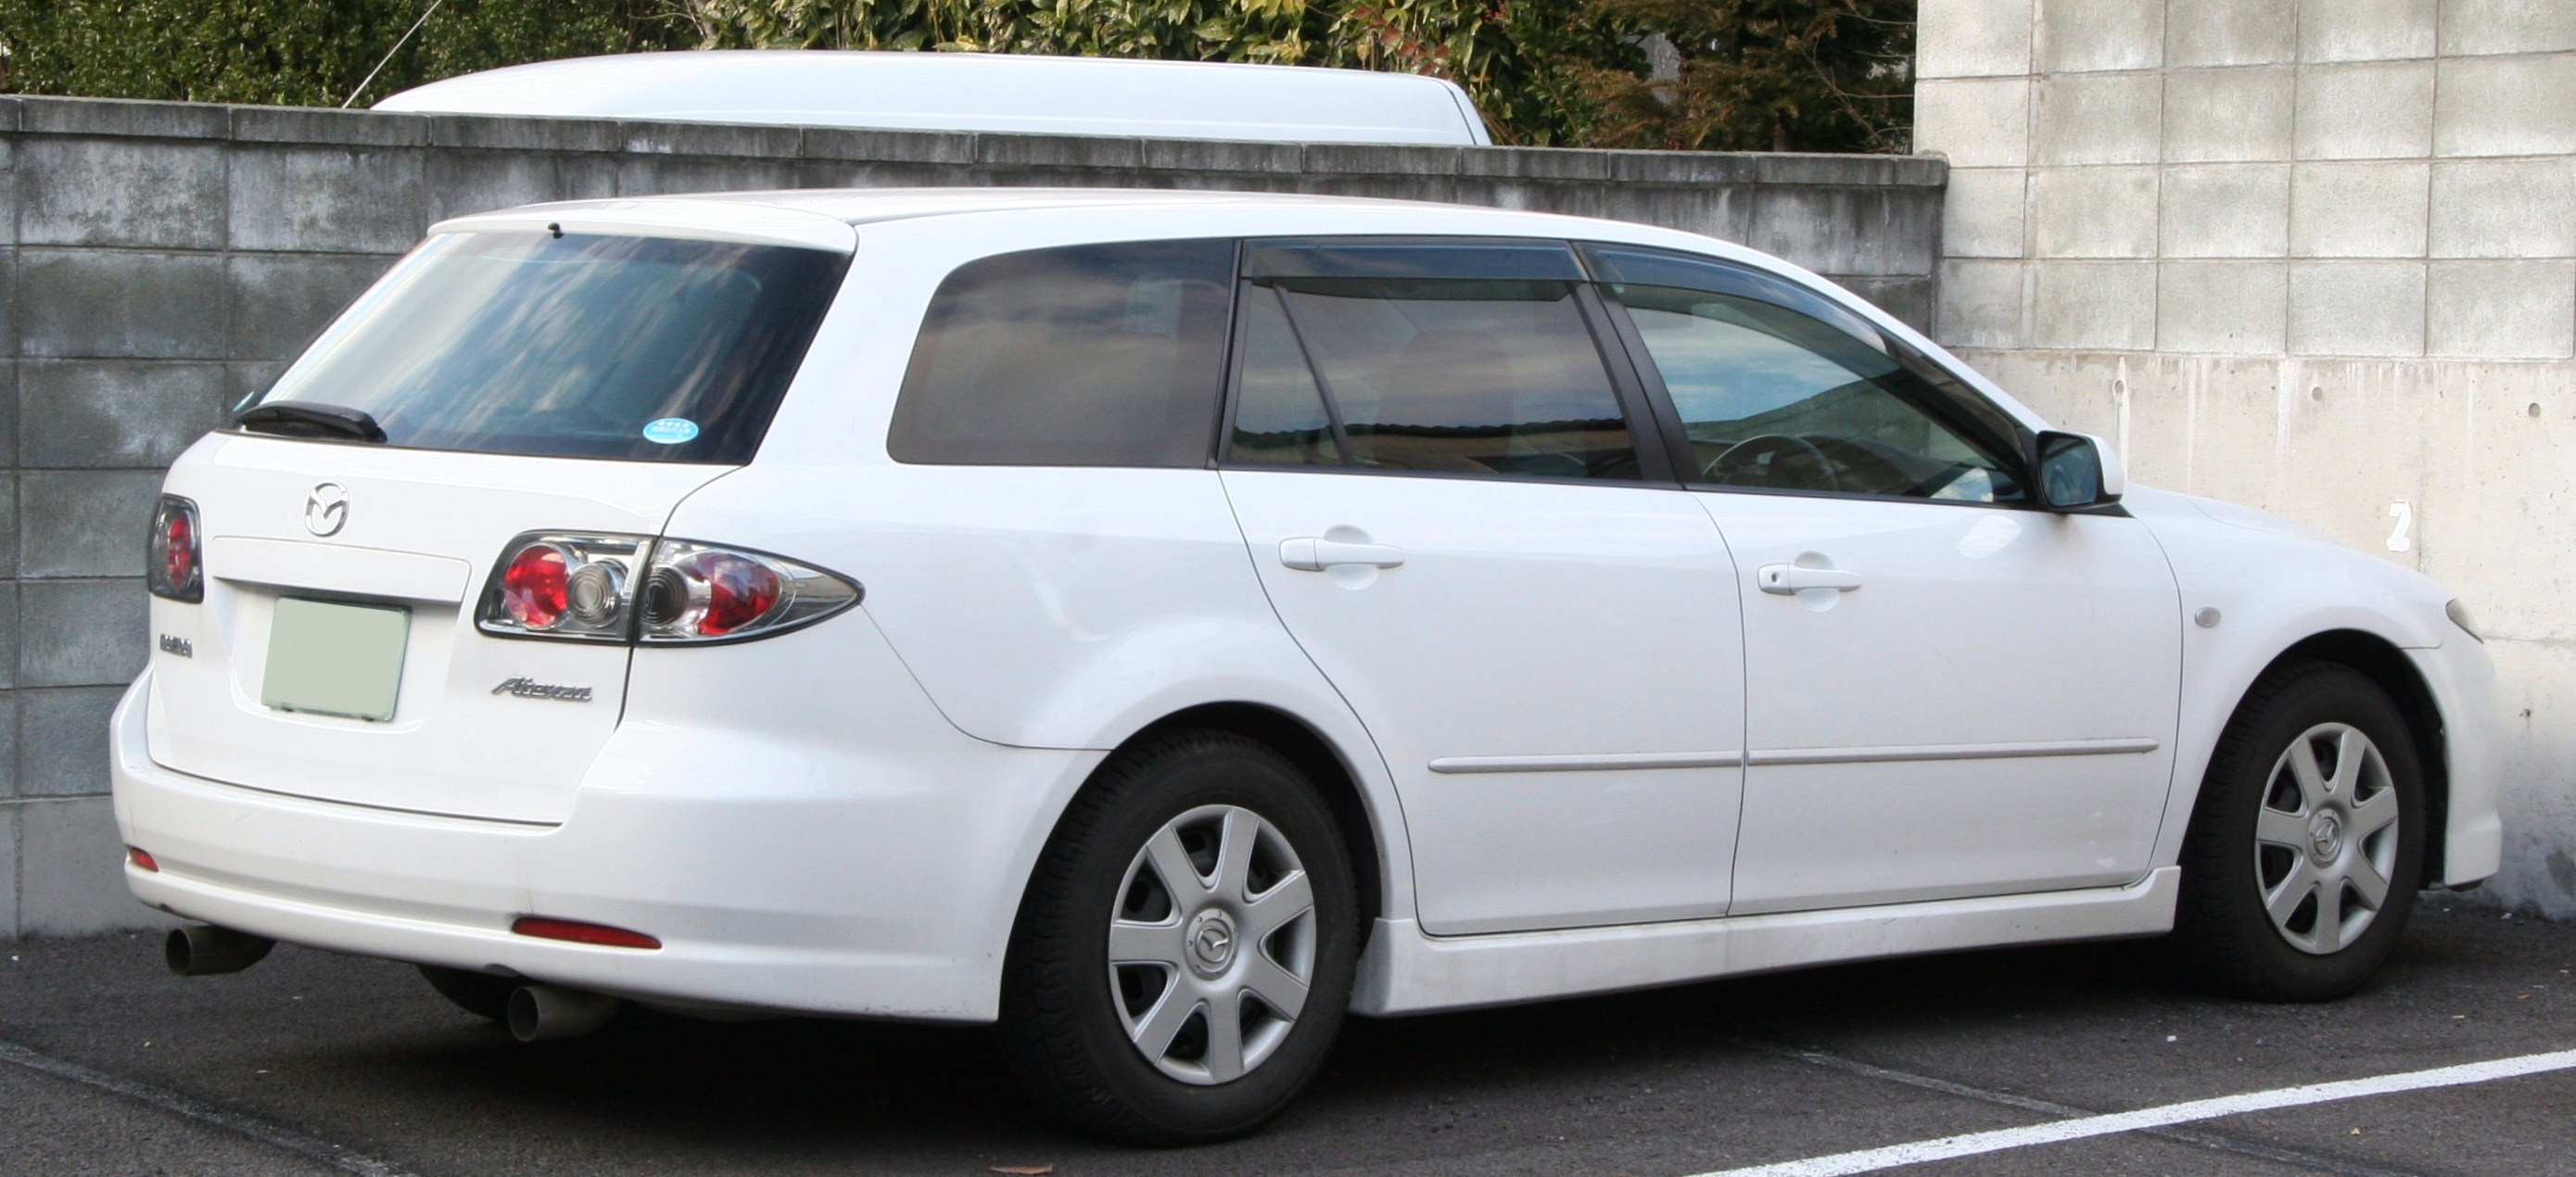 2010 Mazda Atenza ii sport wagon – pictures, information and specs ...